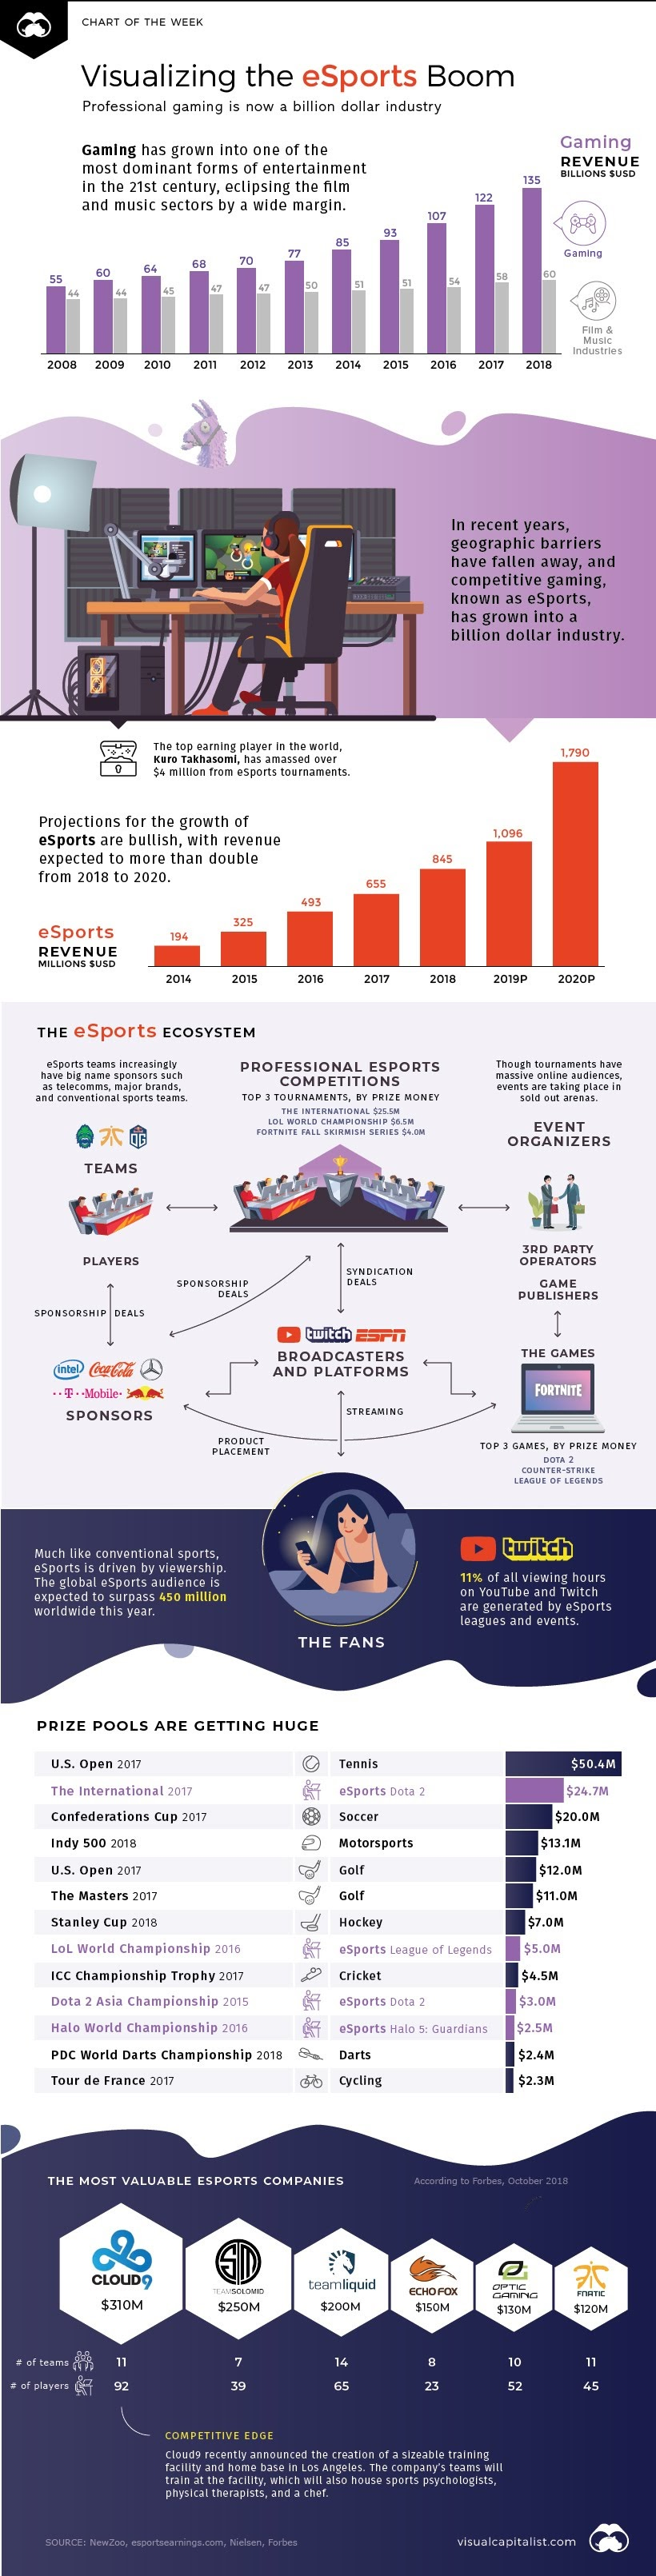 The eSports Boom, and the Numbers Behind the Sector's Explosive Growth #infographic